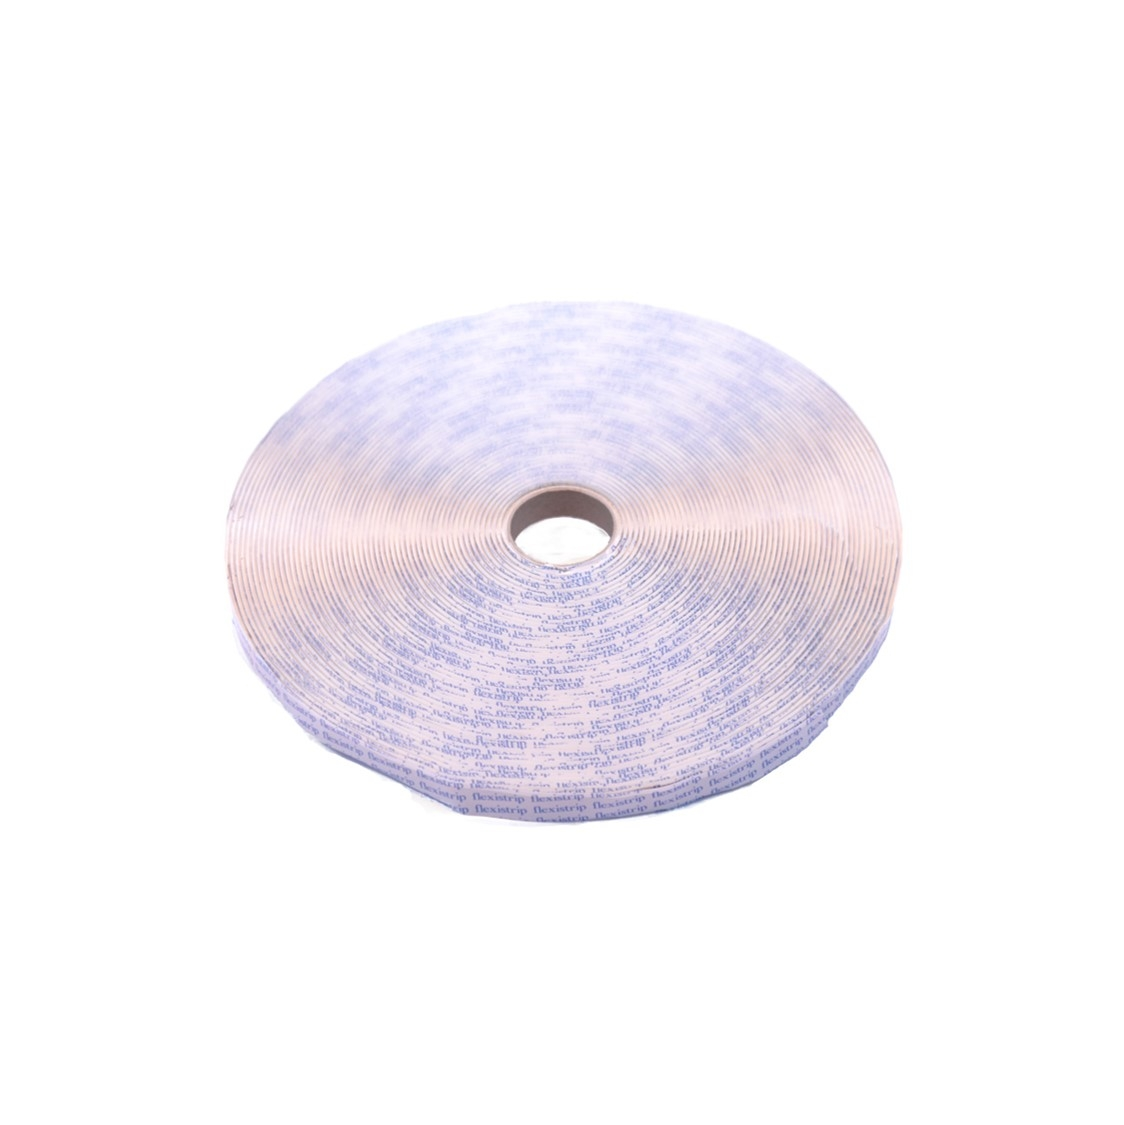 Flexistrip 9 x 2.5mm Off White Butyl Glazing Strip (19m Reel)